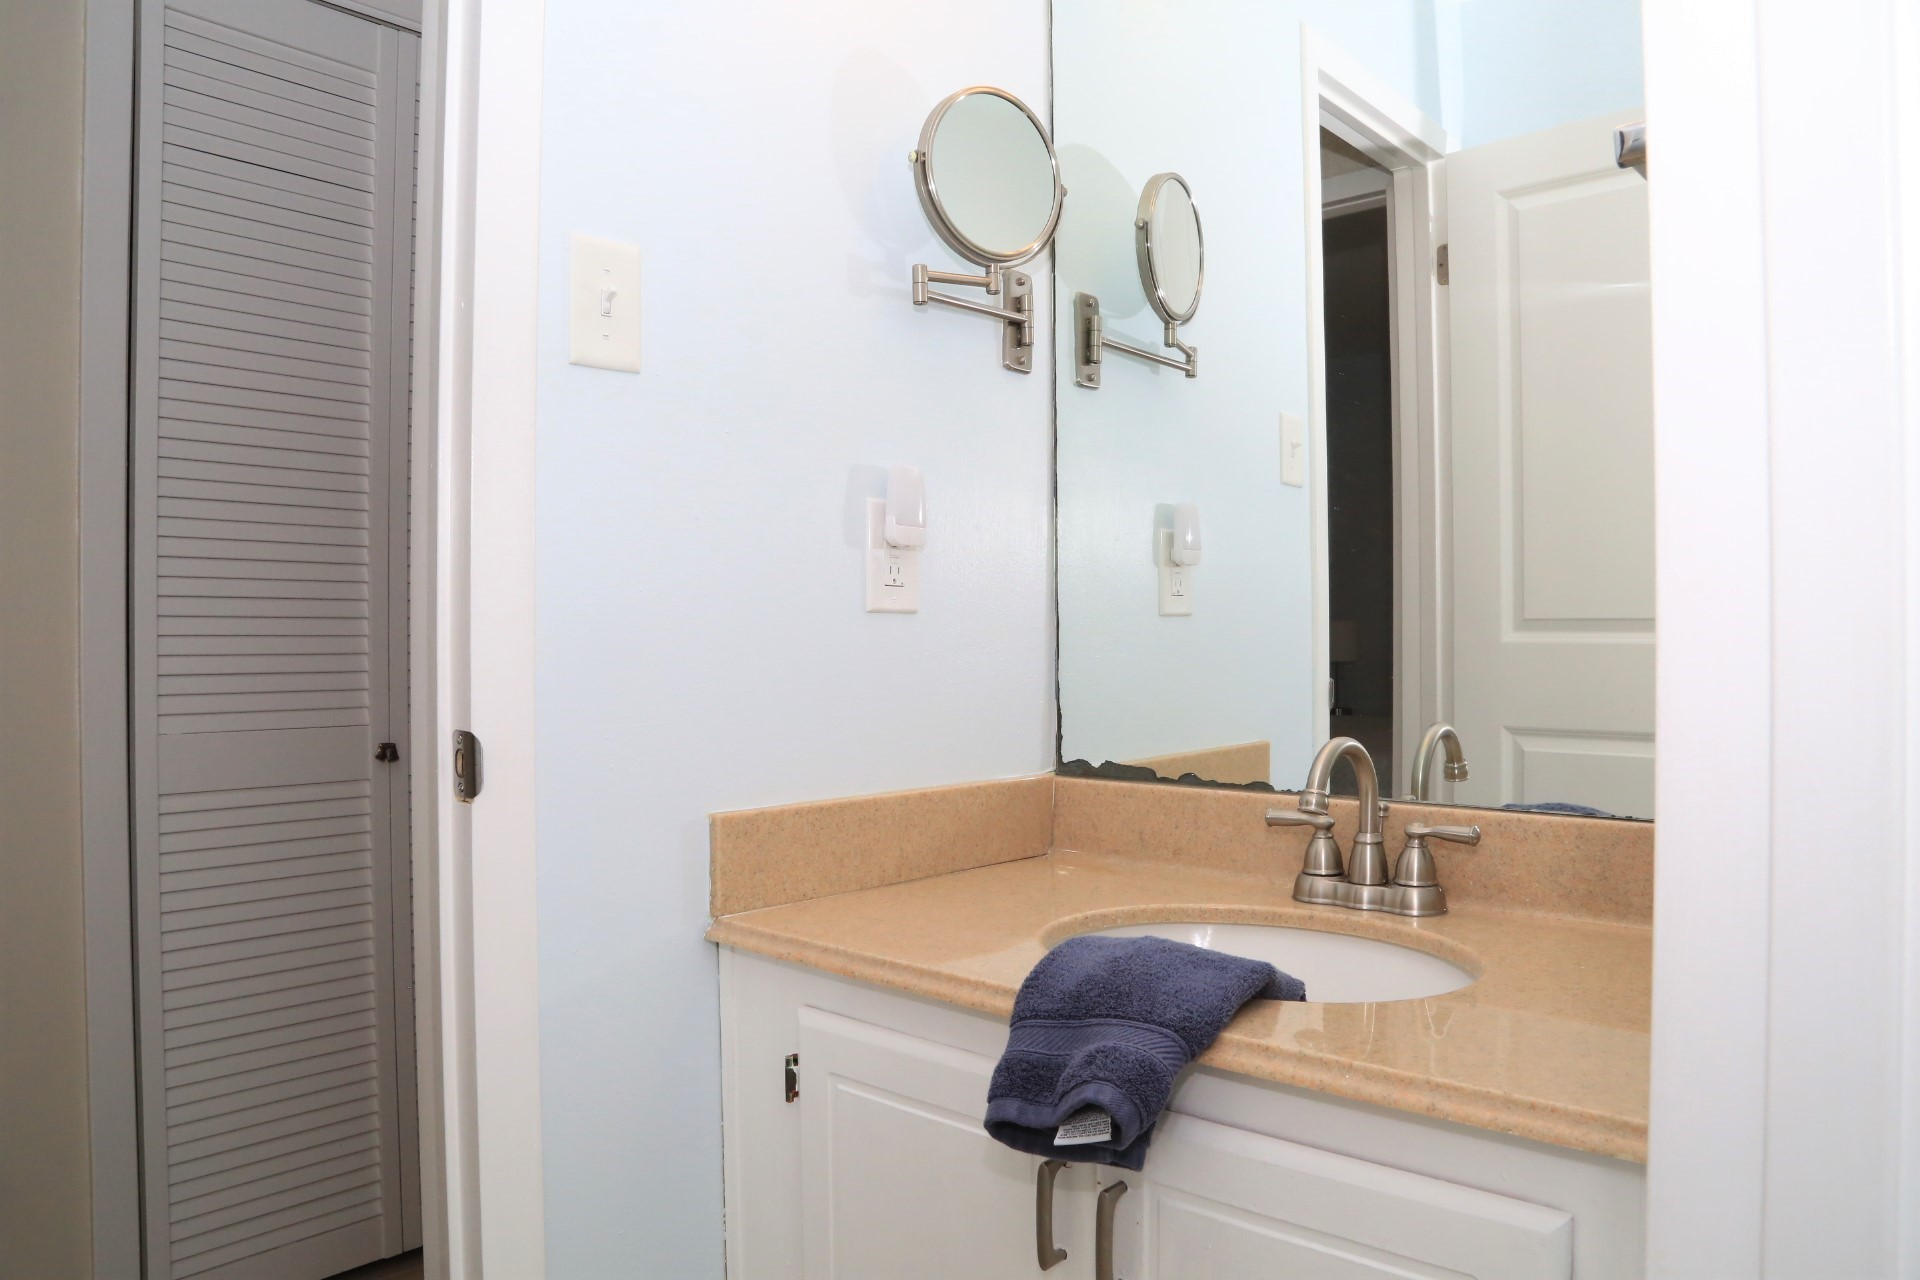 Upstairs bathroom with separate vanity.